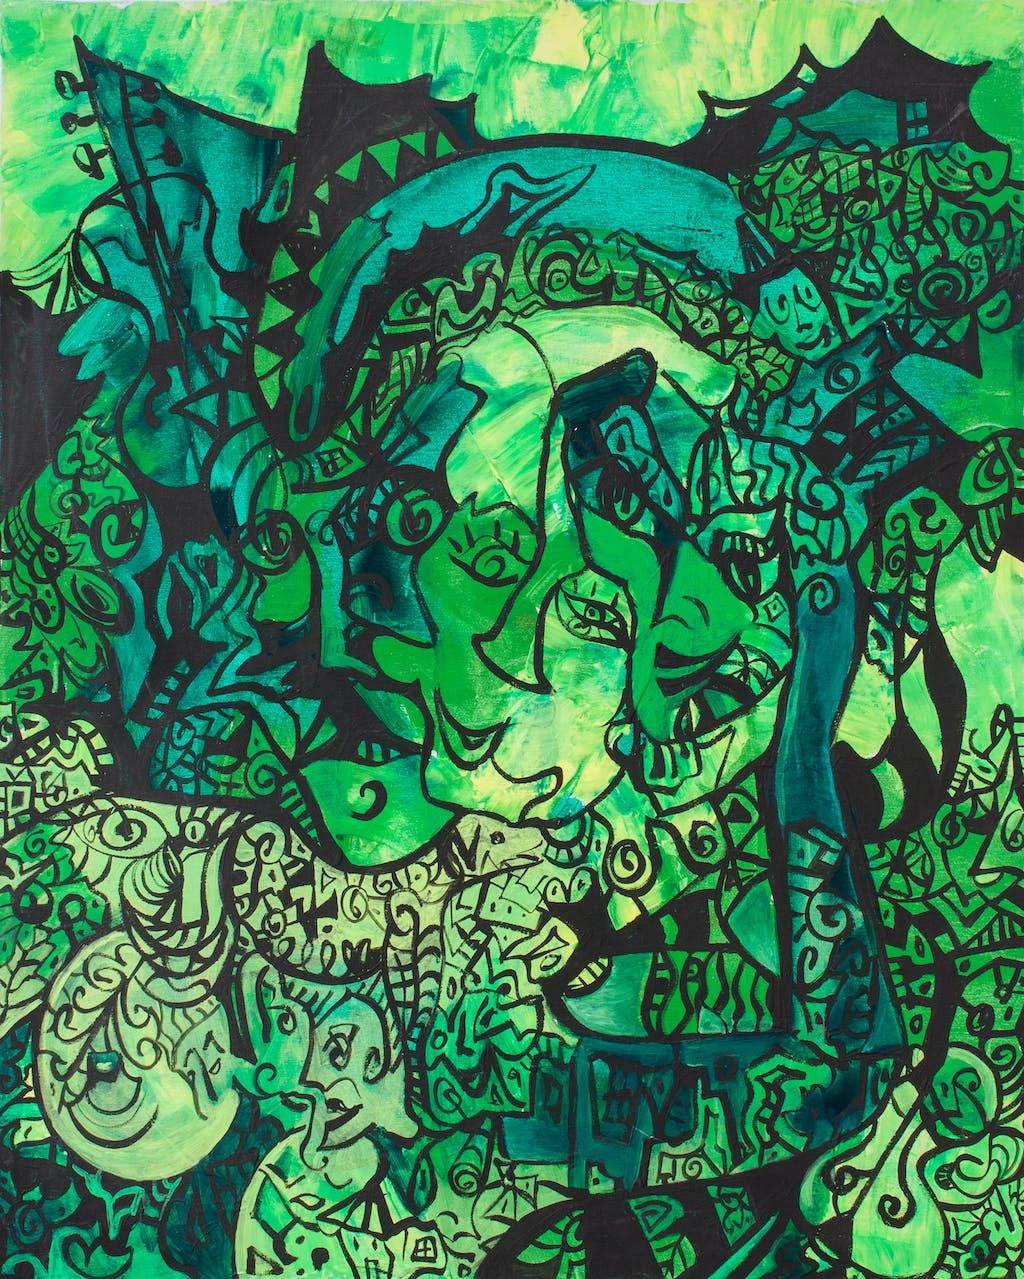 """Painting """"Green dream"""", painted by Elena Birkenwald in 2006"""